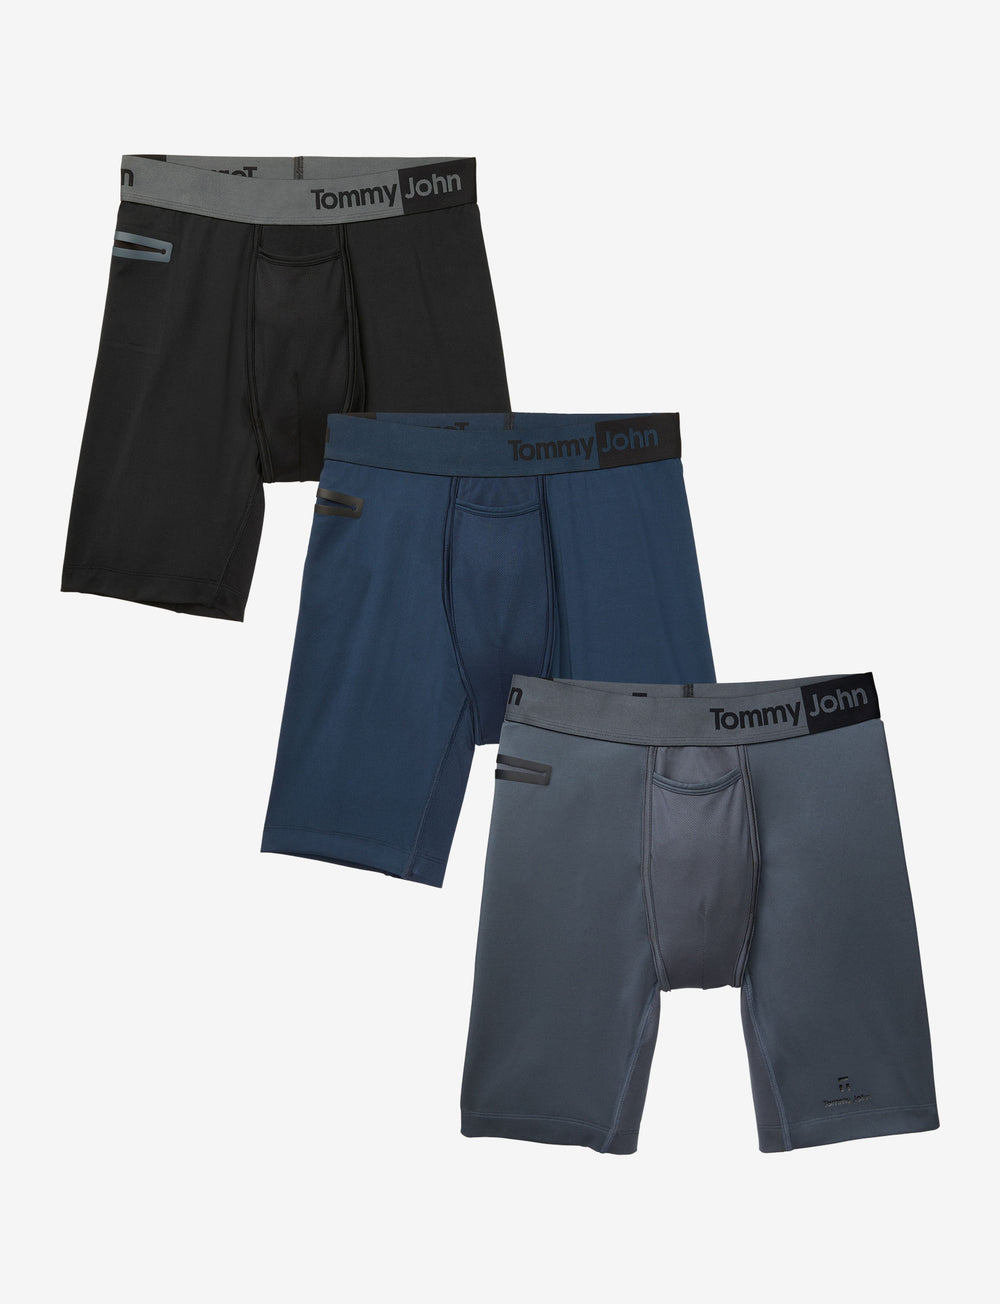 360 Sport 2.0 Boxer Brief 3 Pack Details Image